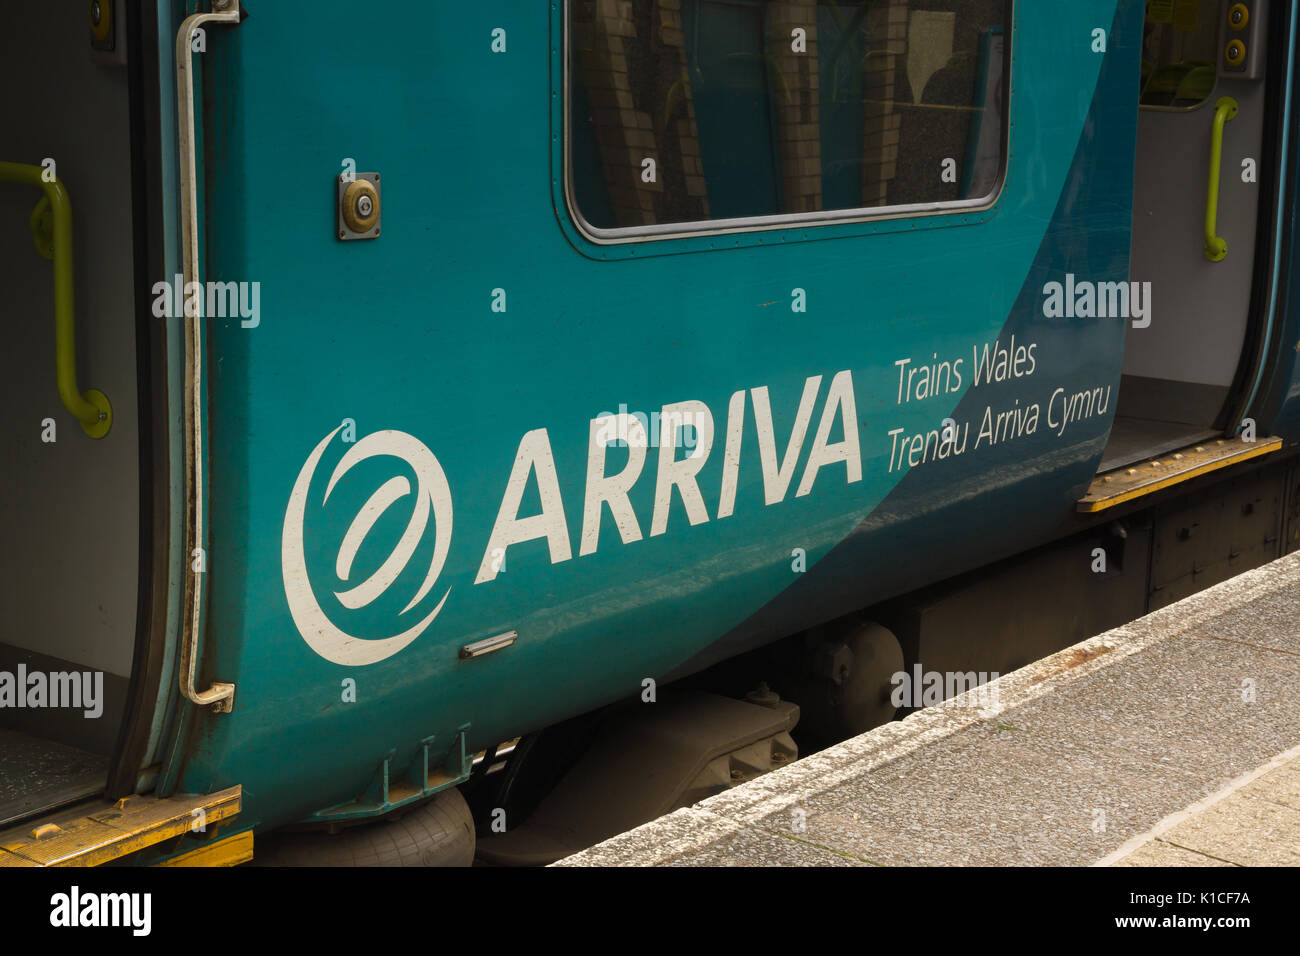 Arriva Logo Bus High Resolution Stock Photography And Images Alamy